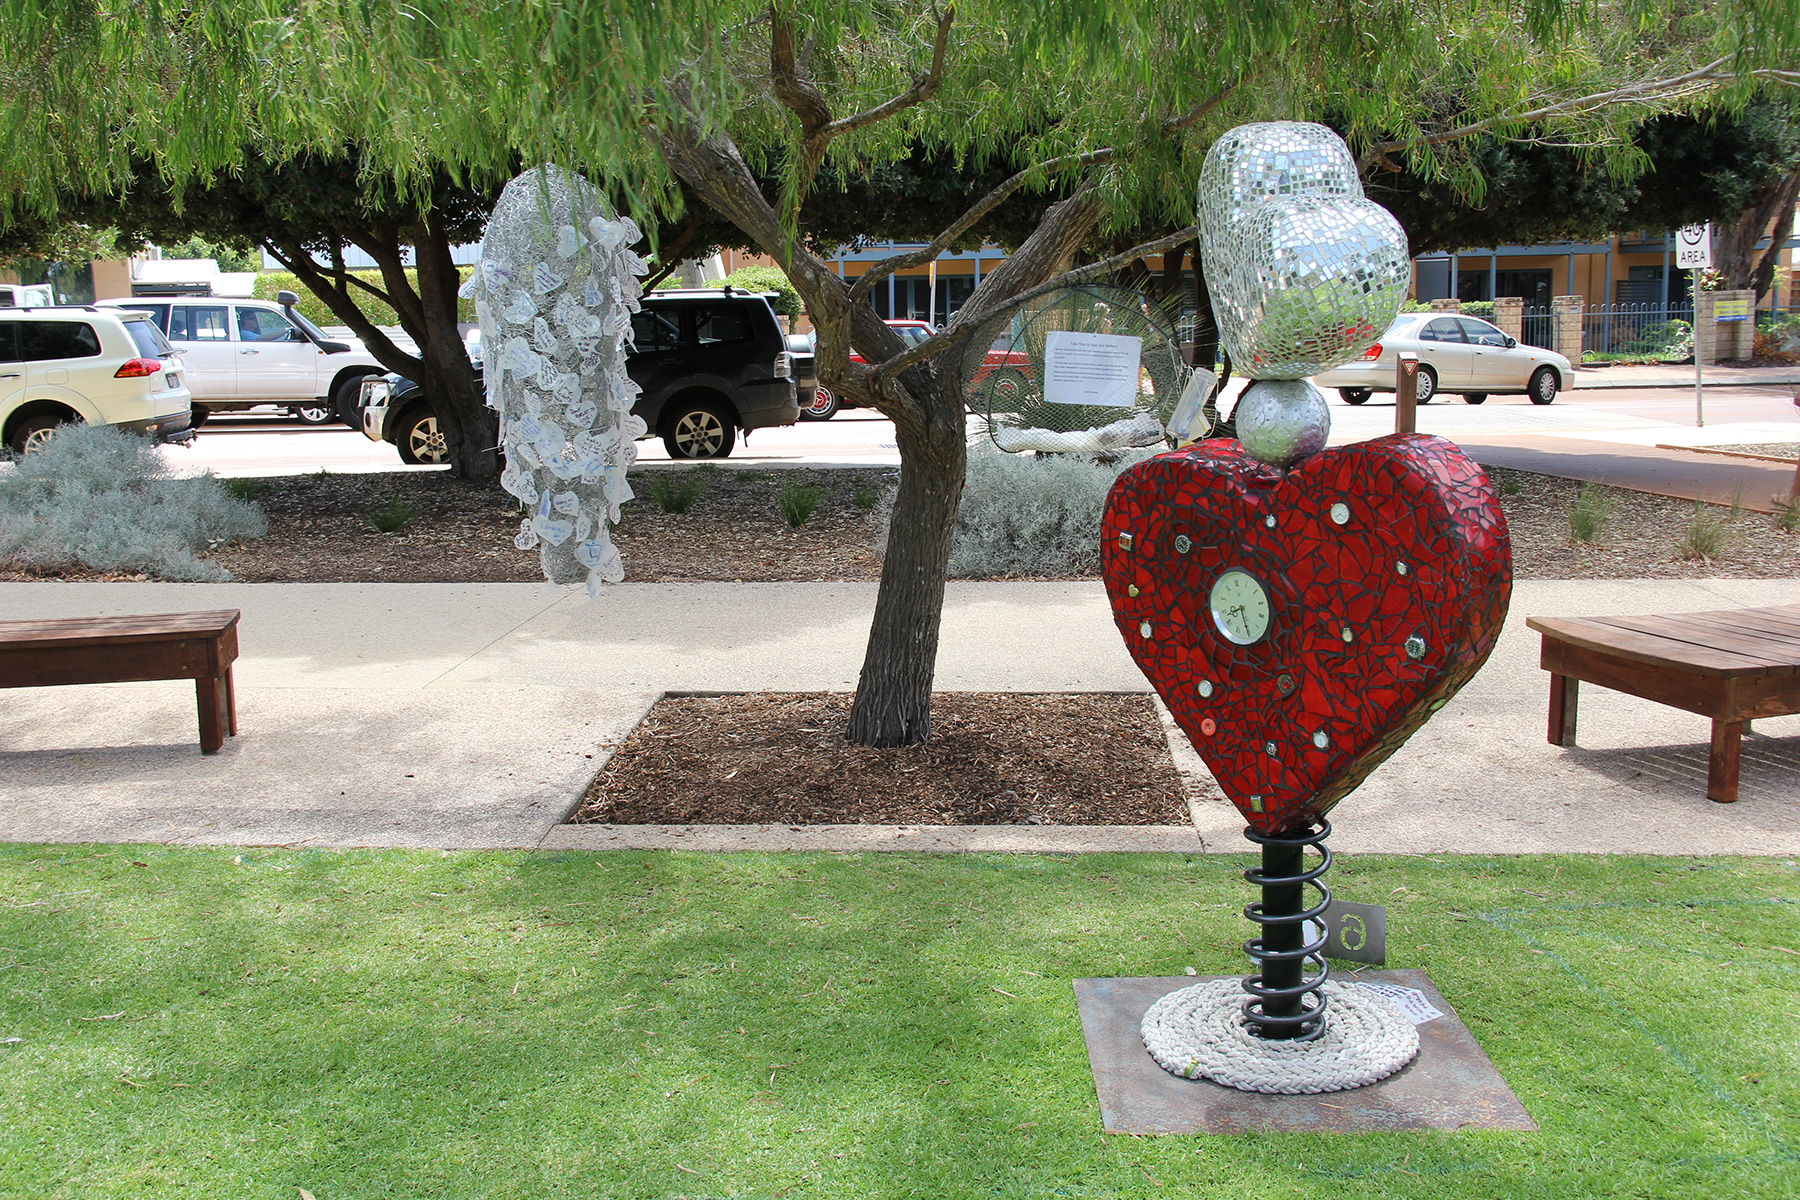 Sculpture by the Bay Gallery. #sculptures #sculpturebythebay #artwork